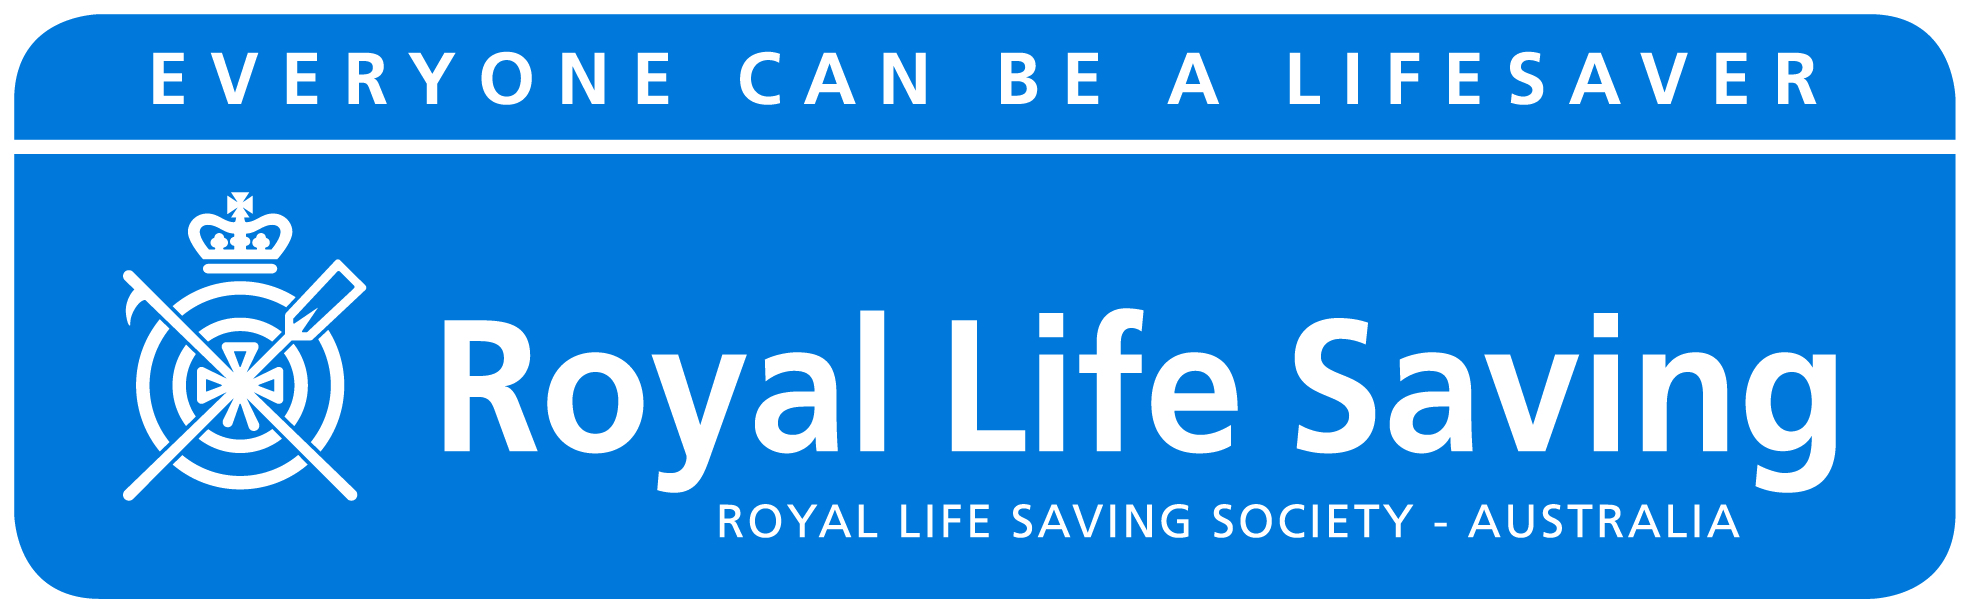 Royal Life Saving Society Logo Australia